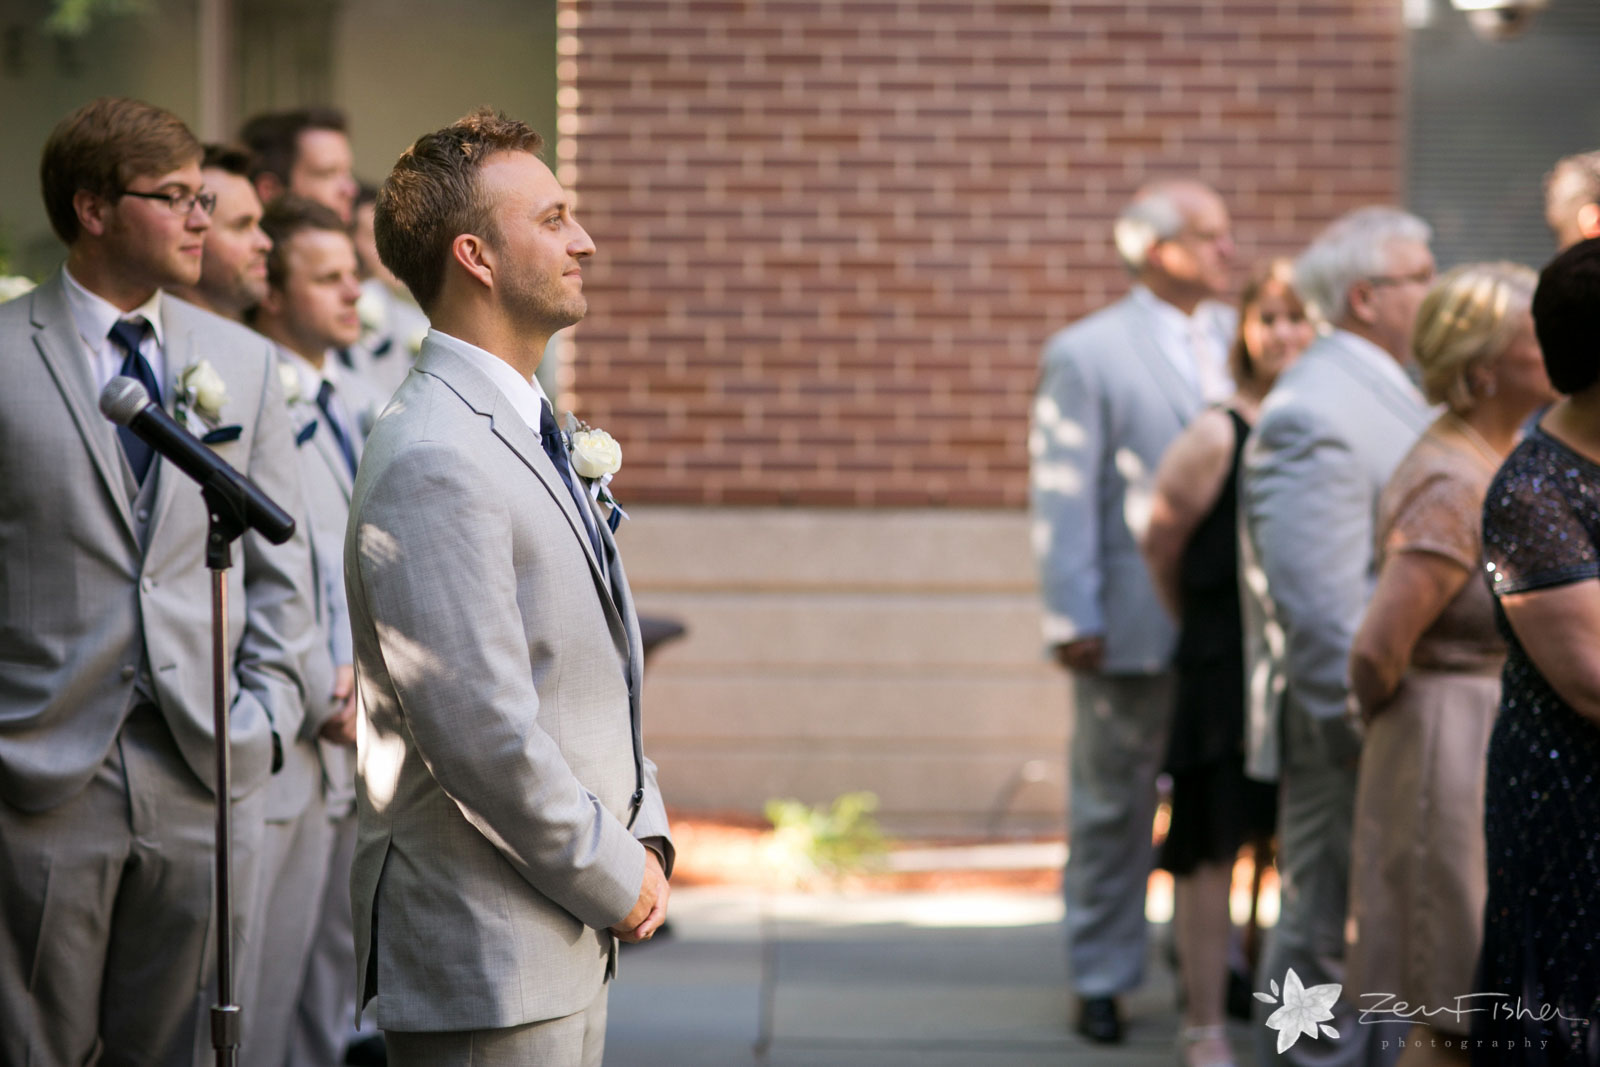 Liberty Hotel Boston wedding, Boston wedding photography, groom's reaction to bride during ceremony